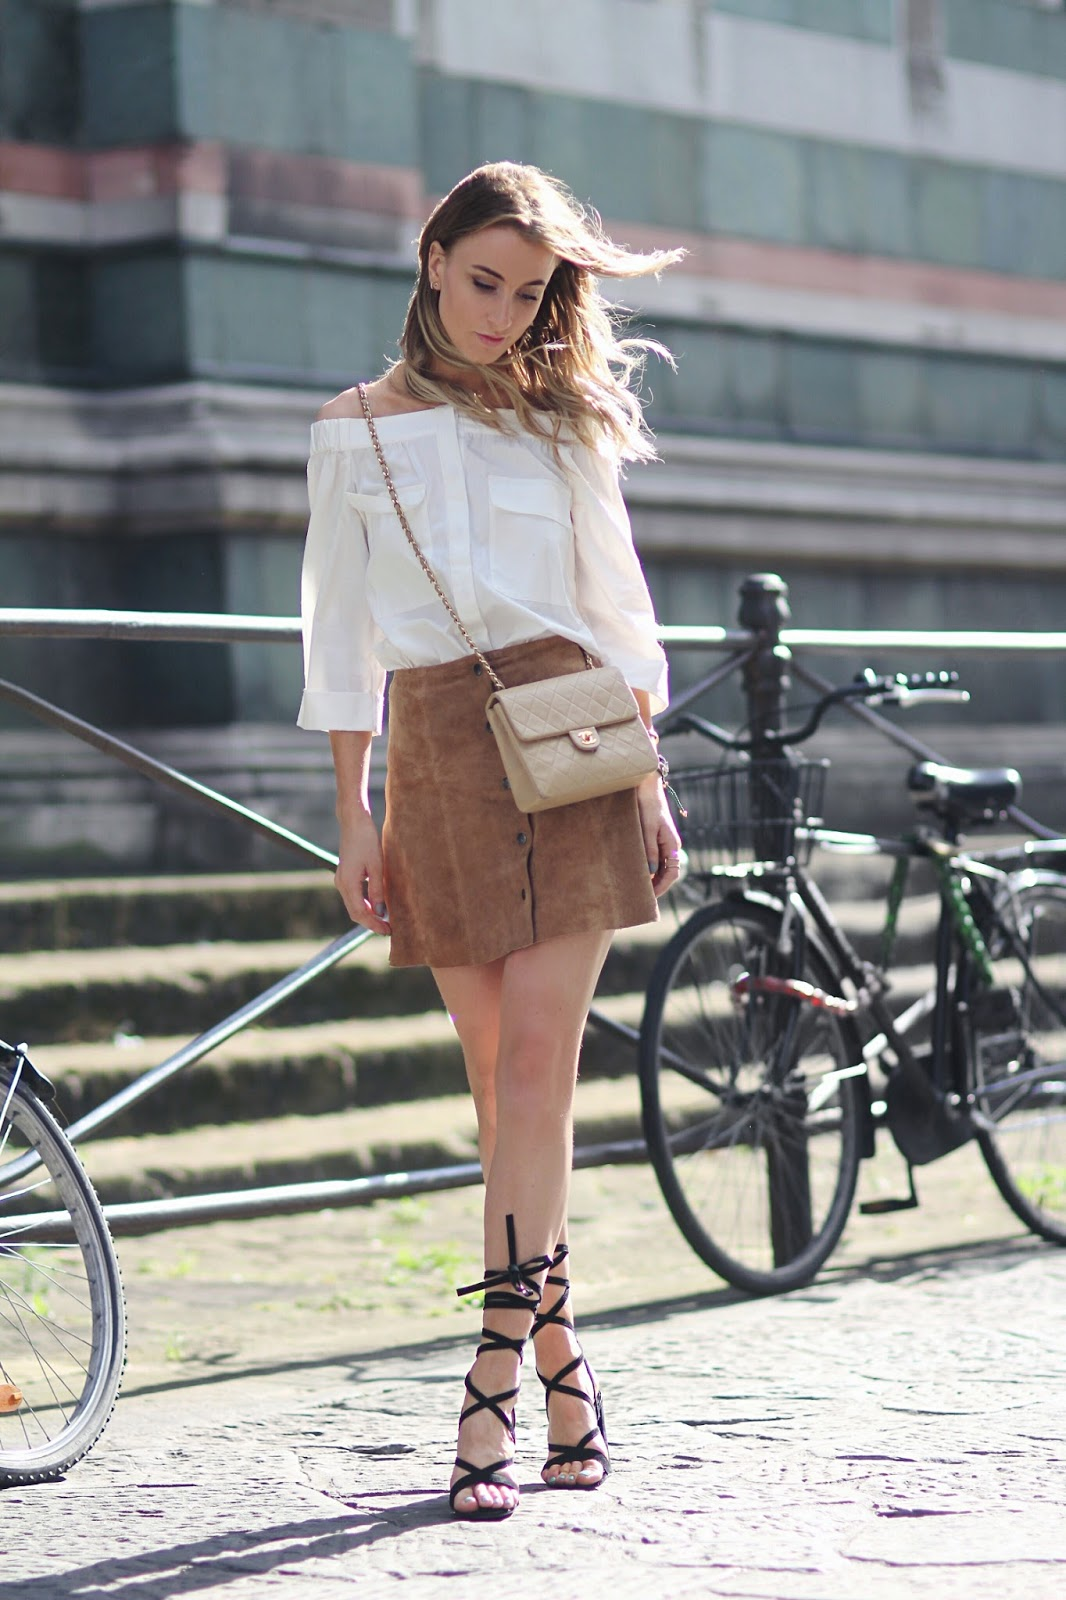 Queen of Jet Lags - Lace Up Heels / Chanel Bag / Suede A Line Skirt